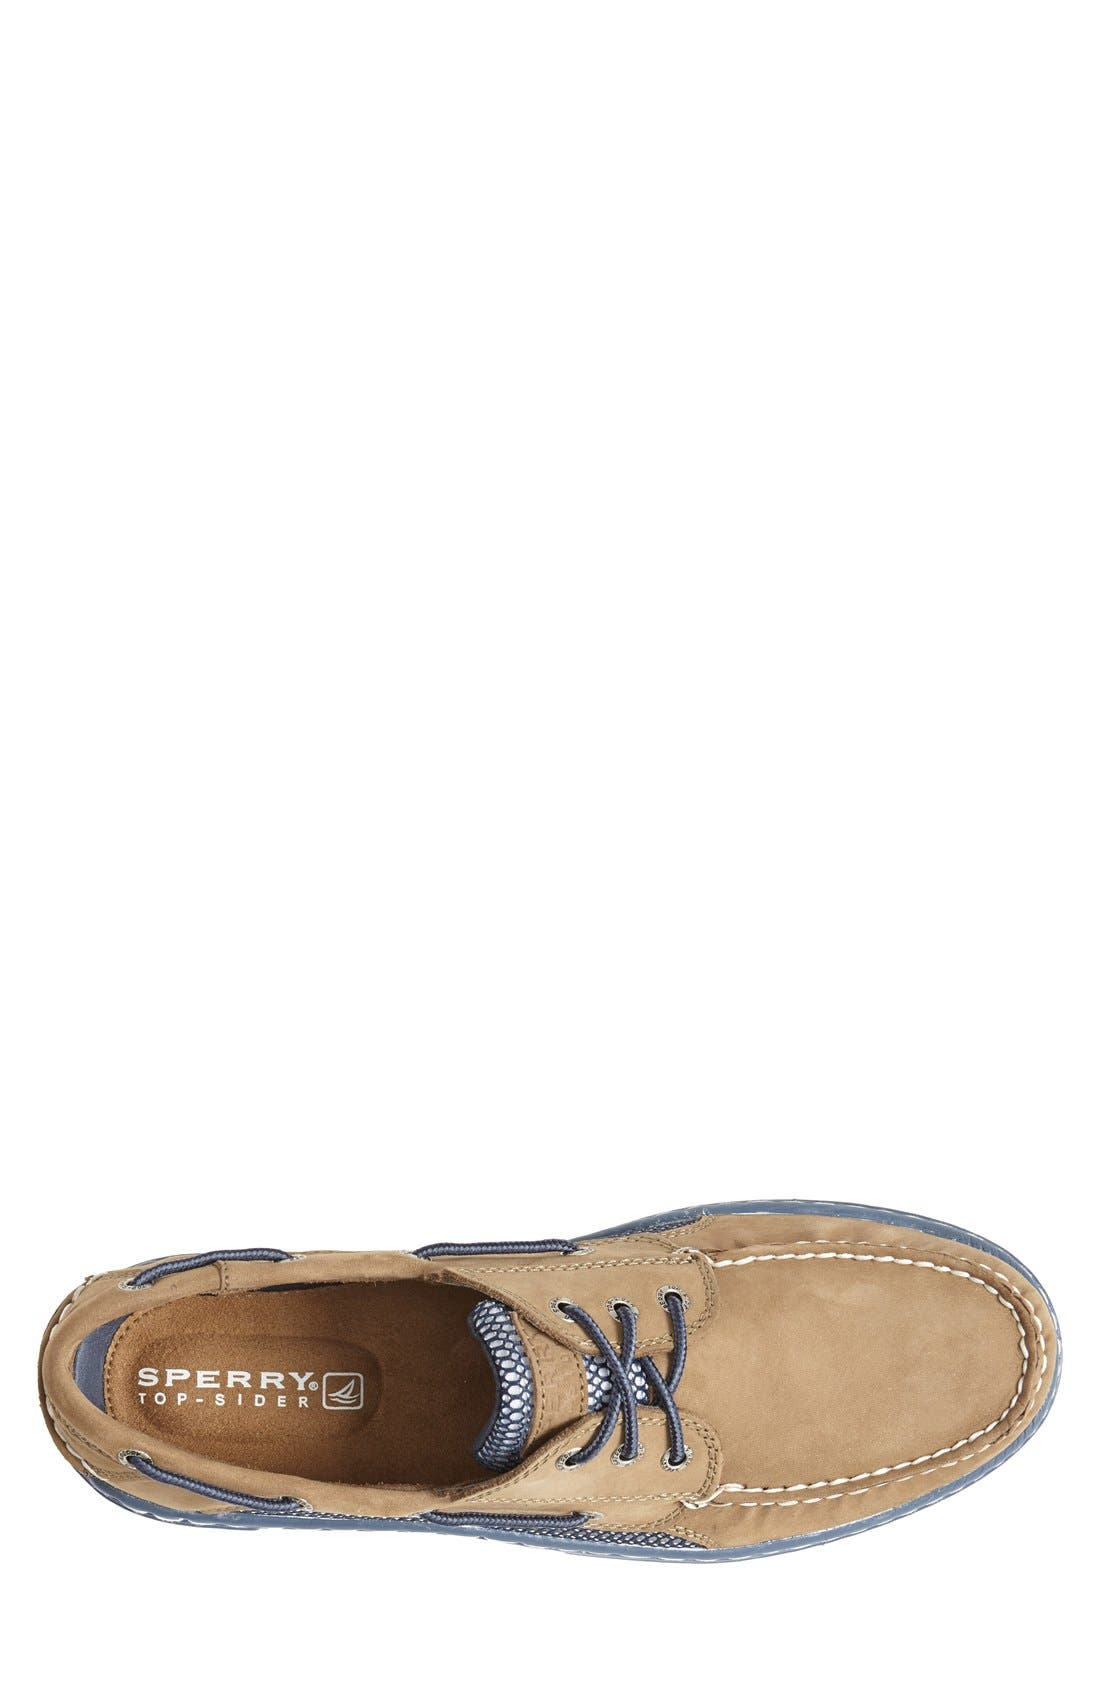 'Billfish Ultralite' Boat Shoe,                             Alternate thumbnail 55, color,